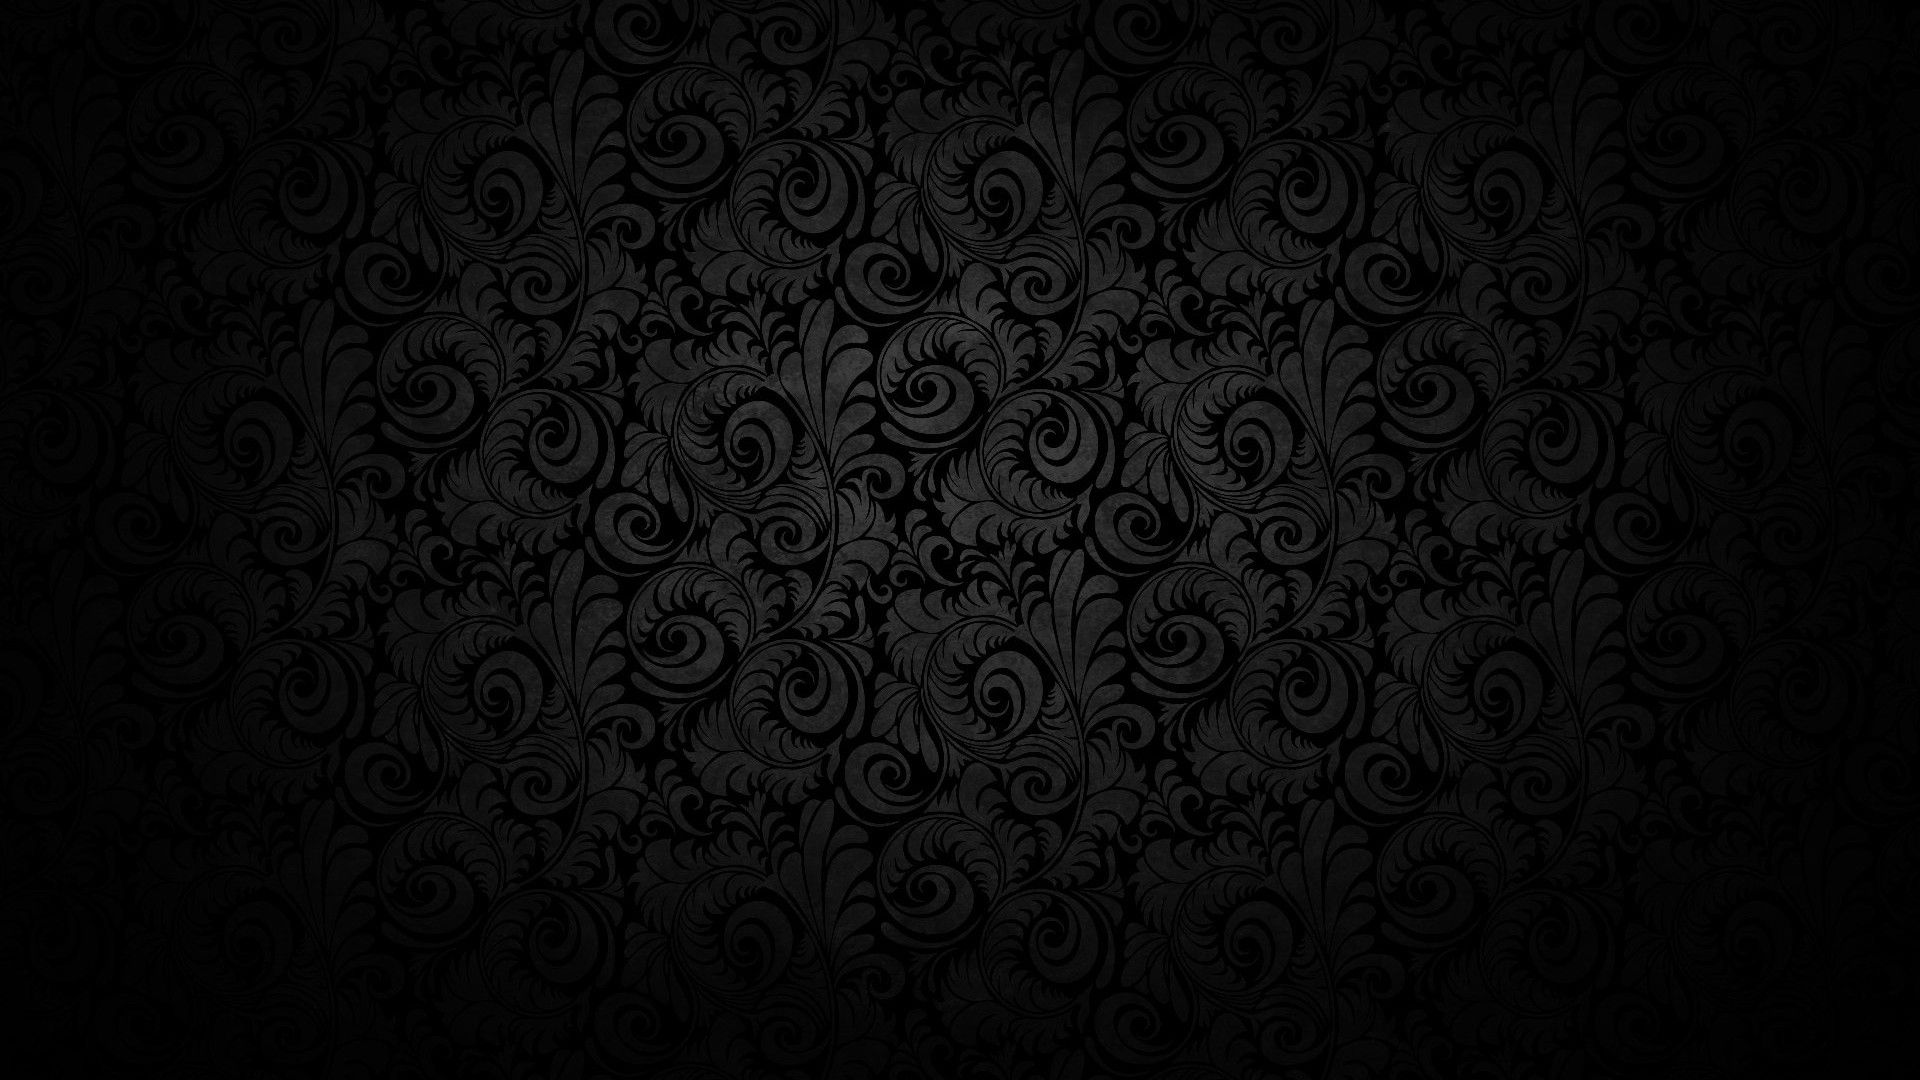 1920x1080 Wallpaper Triangle Inverted Black White Black Hd Wallpaper Dark Black Wallpaper Dark Wallpaper